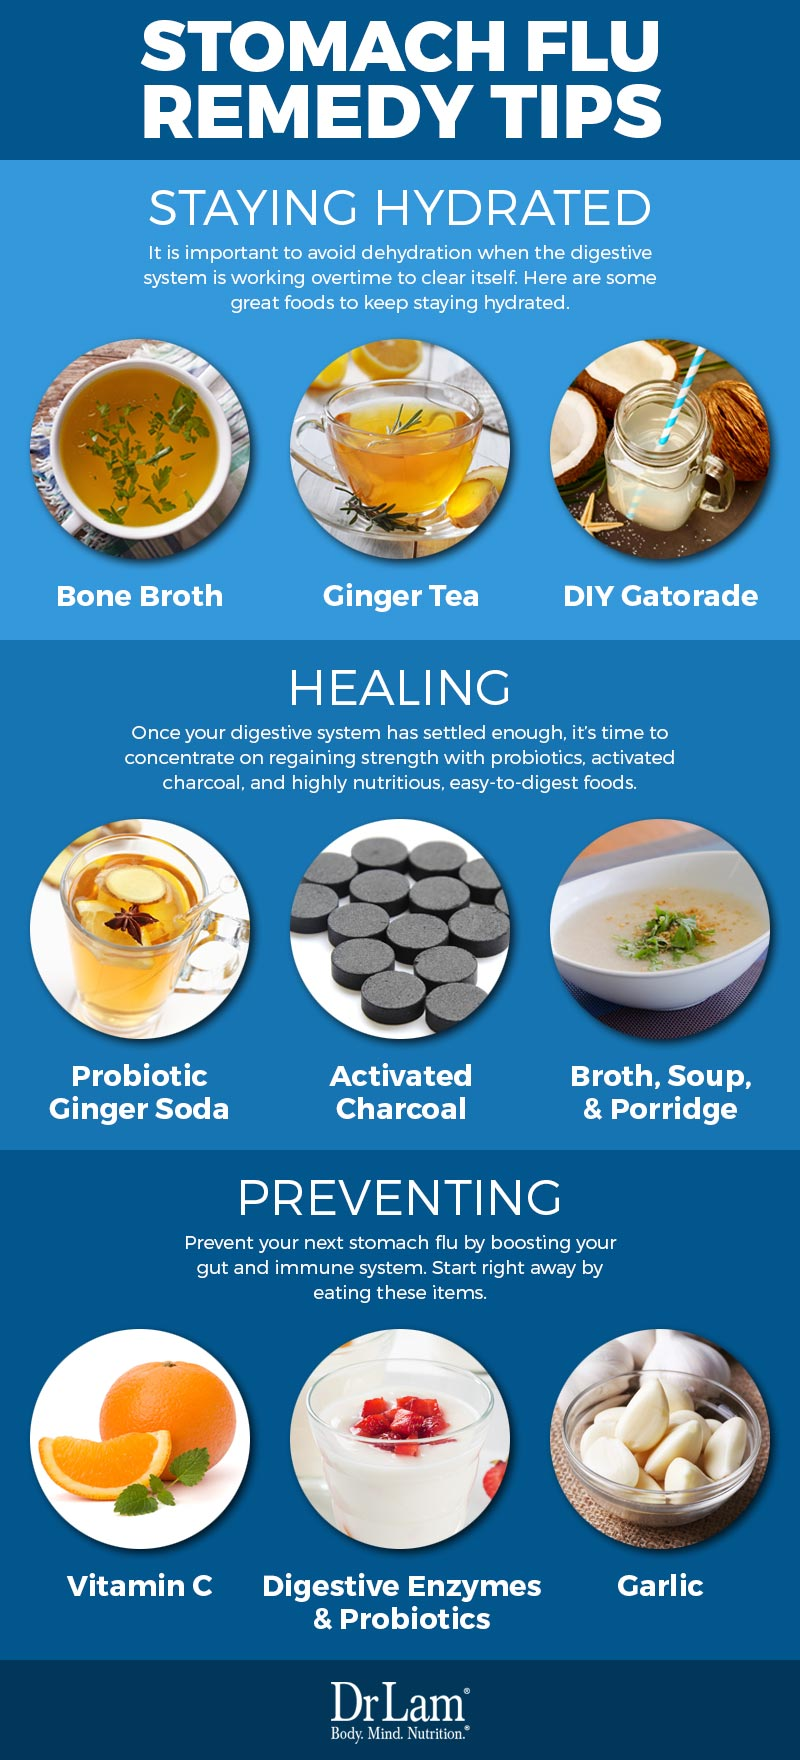 Check out this easy to understand infographic about stomach flu remedy tips